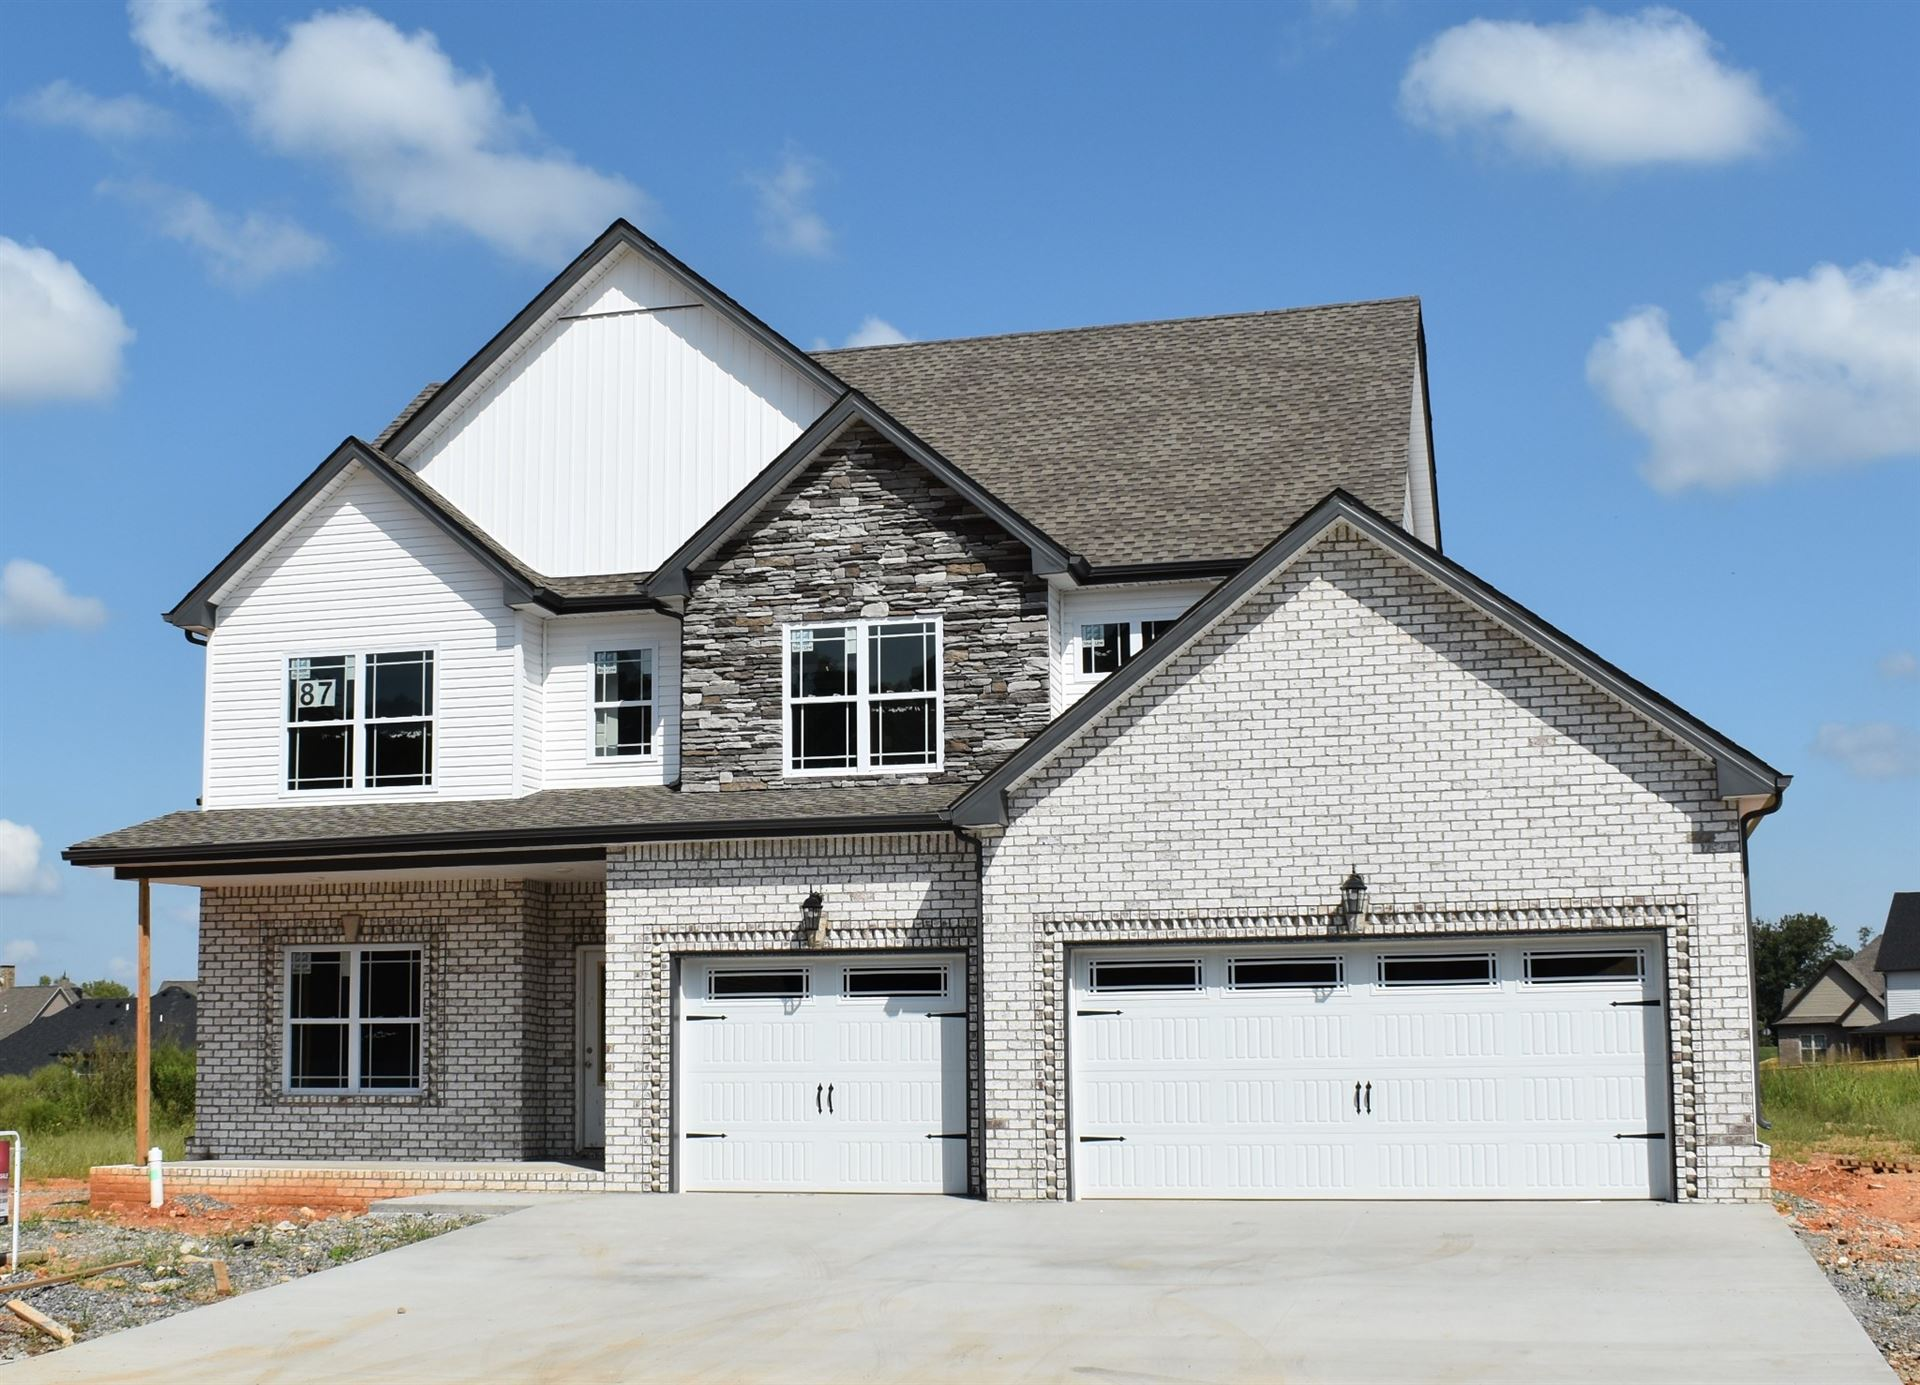 87 Reserve at Hickory Wild, Clarksville, TN 37043 - MLS#: 2160815